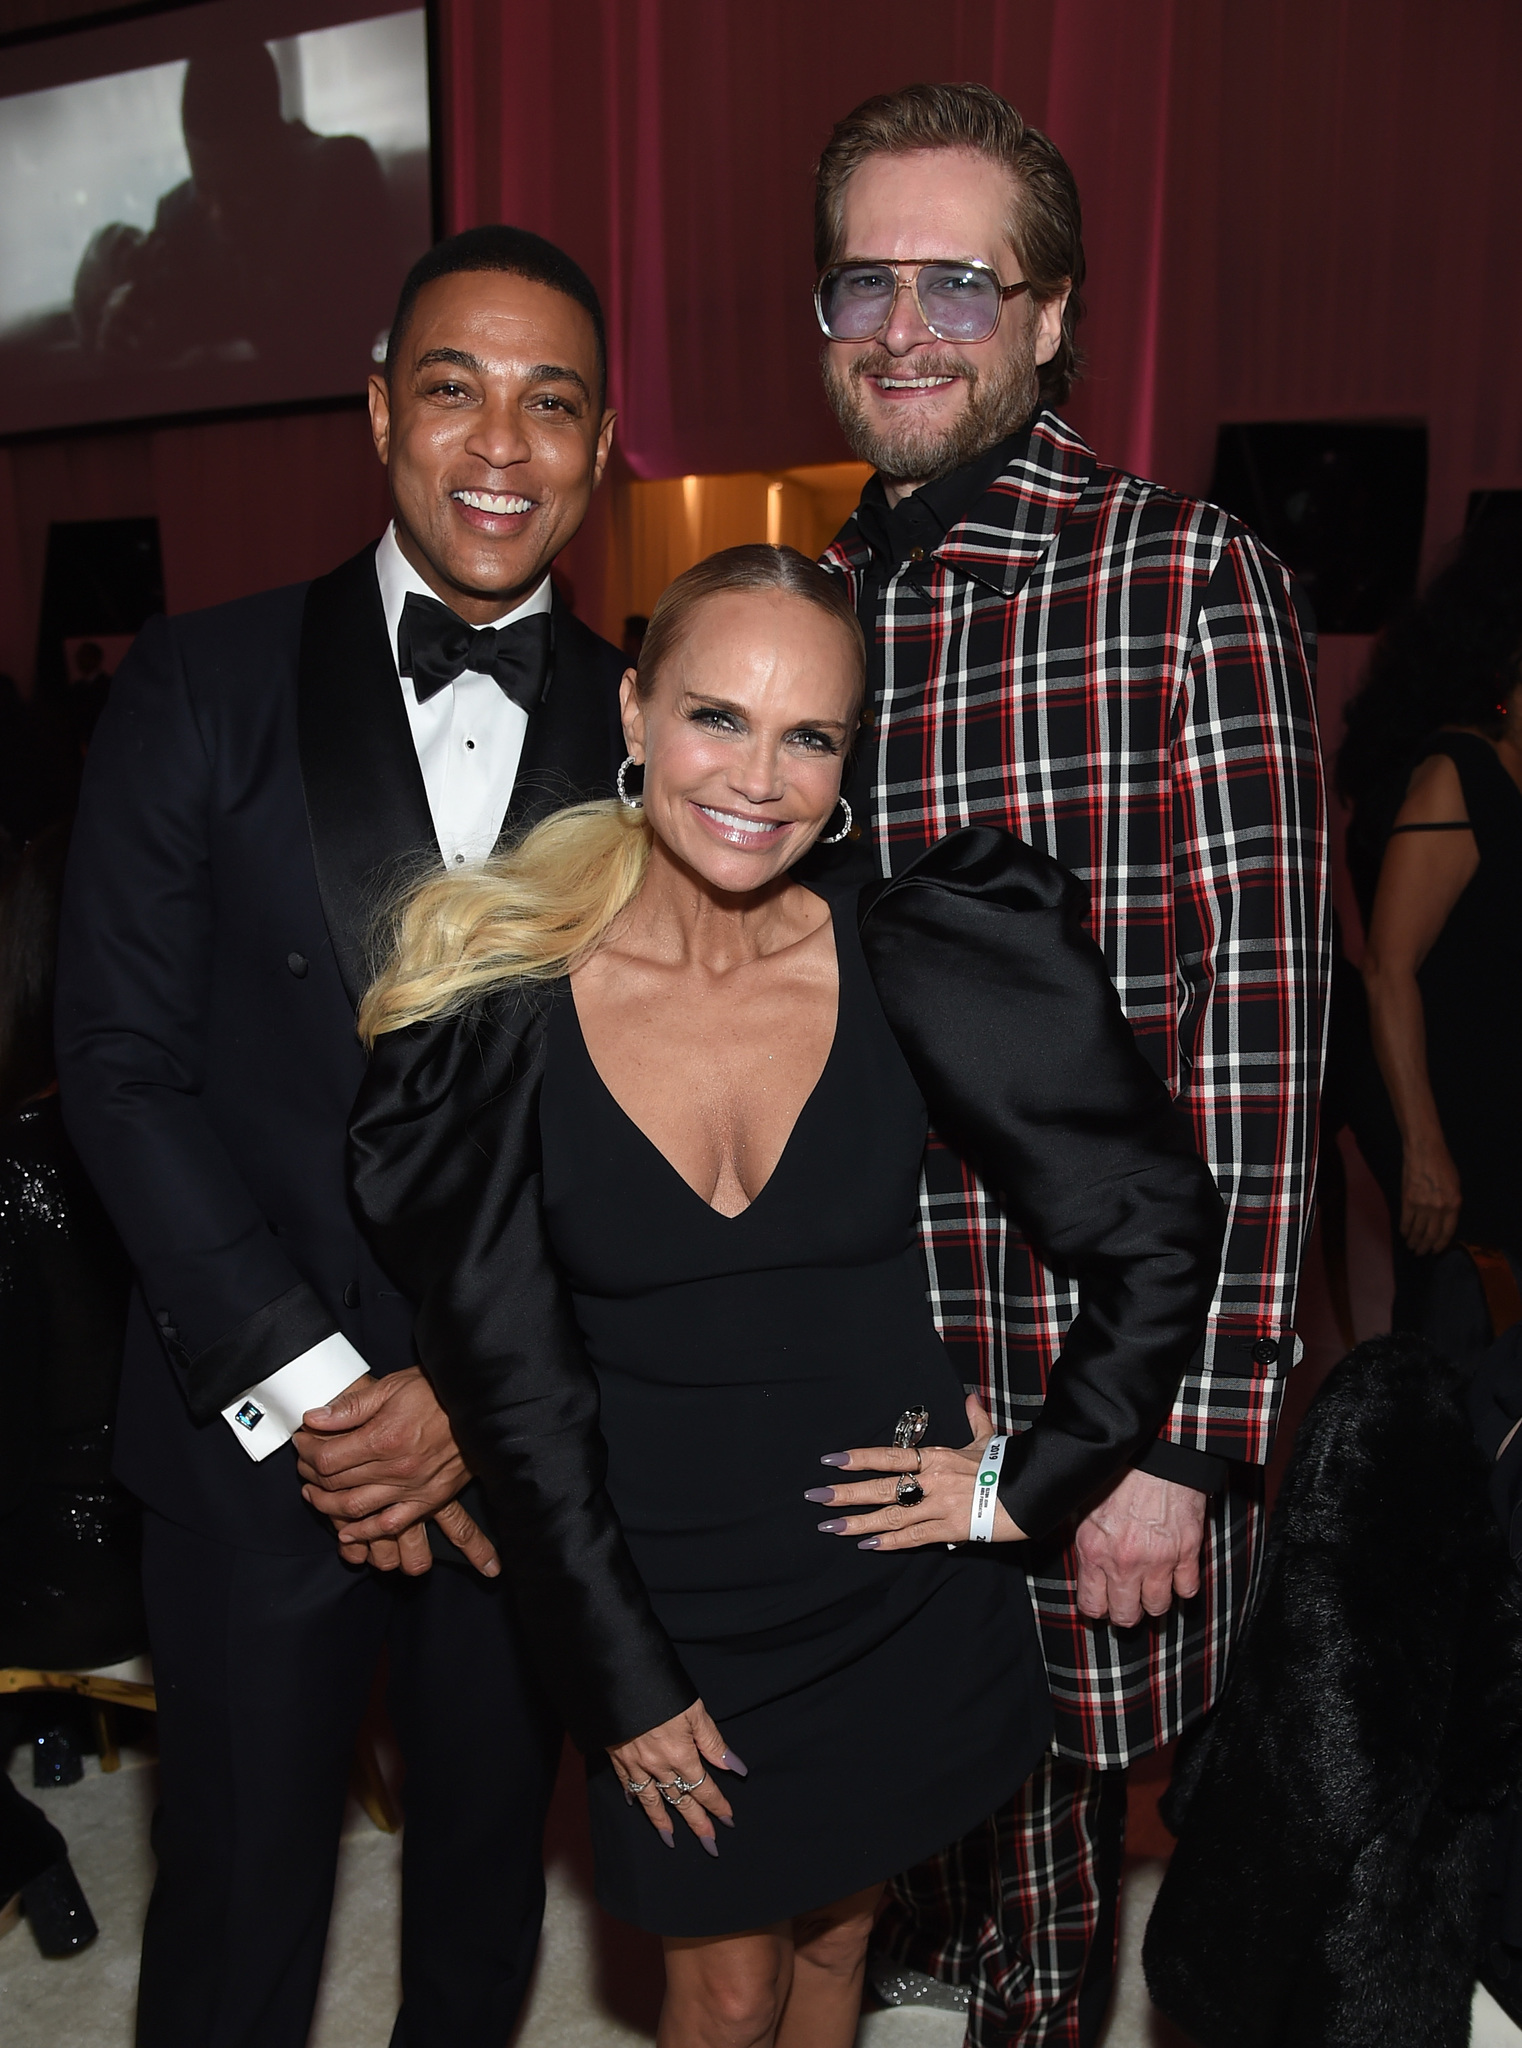 Kristin Chenoweth, Bryan Fuller, and Don Lemon at an event for The Oscars (2019)